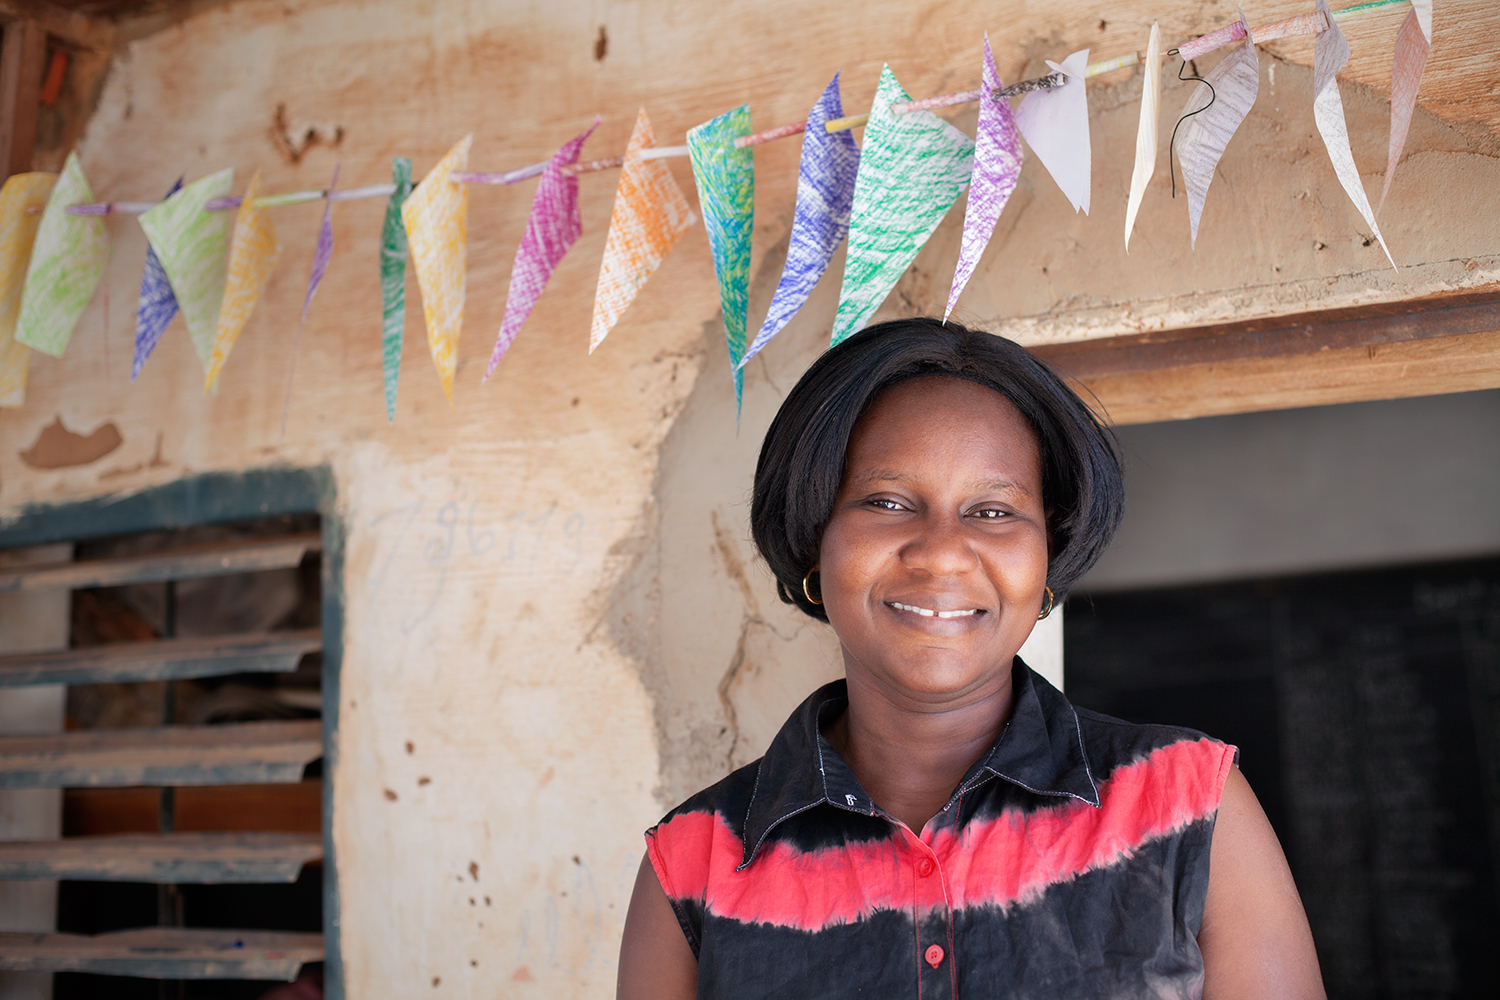 Martine Kabore works at the Pan Bila shelter for young girls who have experienced forced marriage, early pregnancy and sexual violence in Ouagadougou, Burkina Faso.